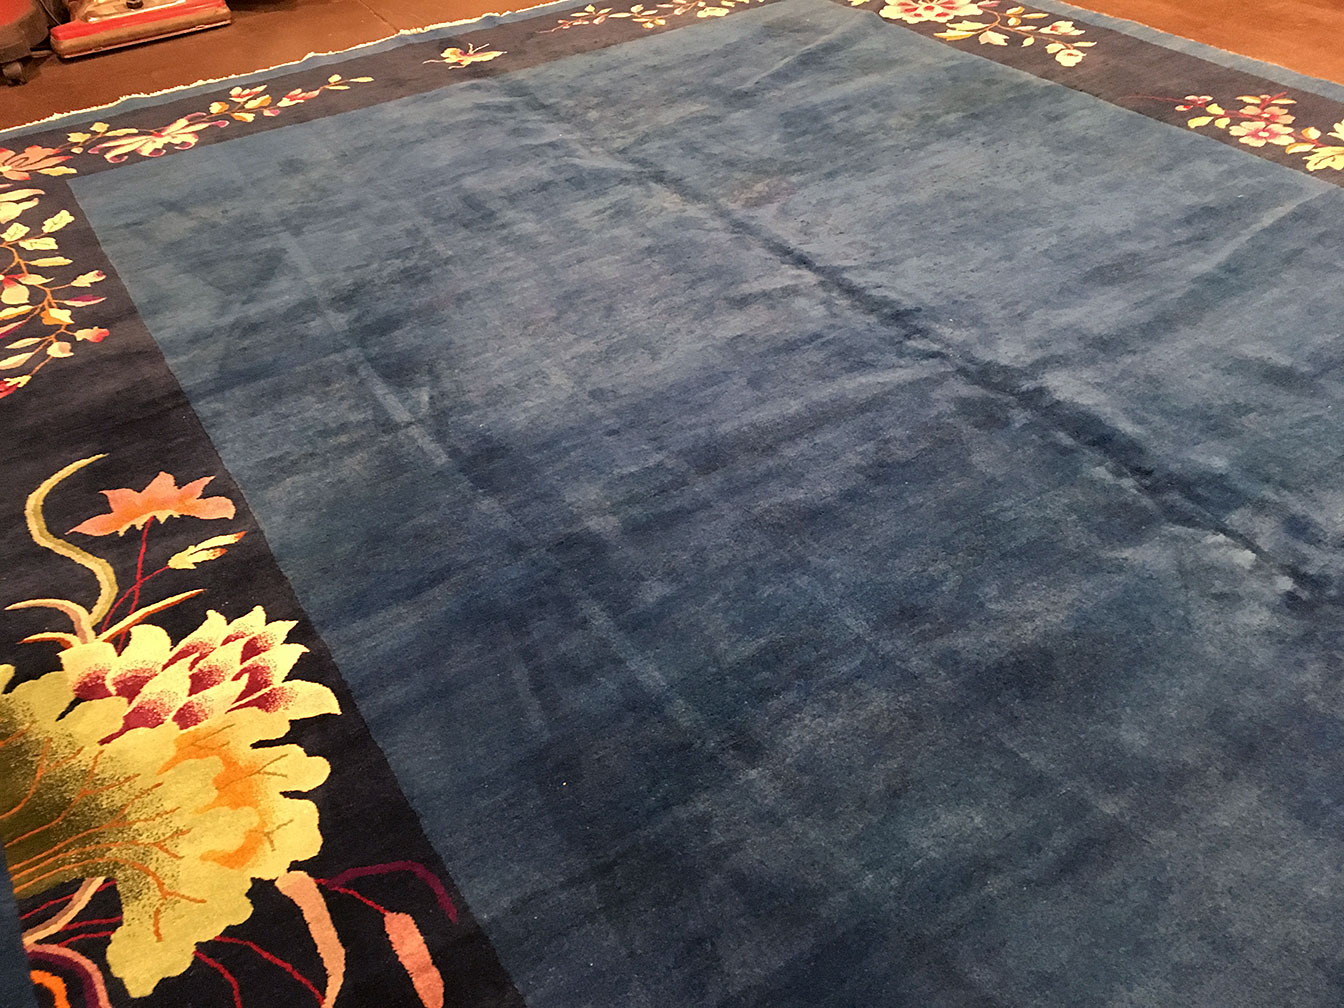 Antique chinese Carpet - # 52791